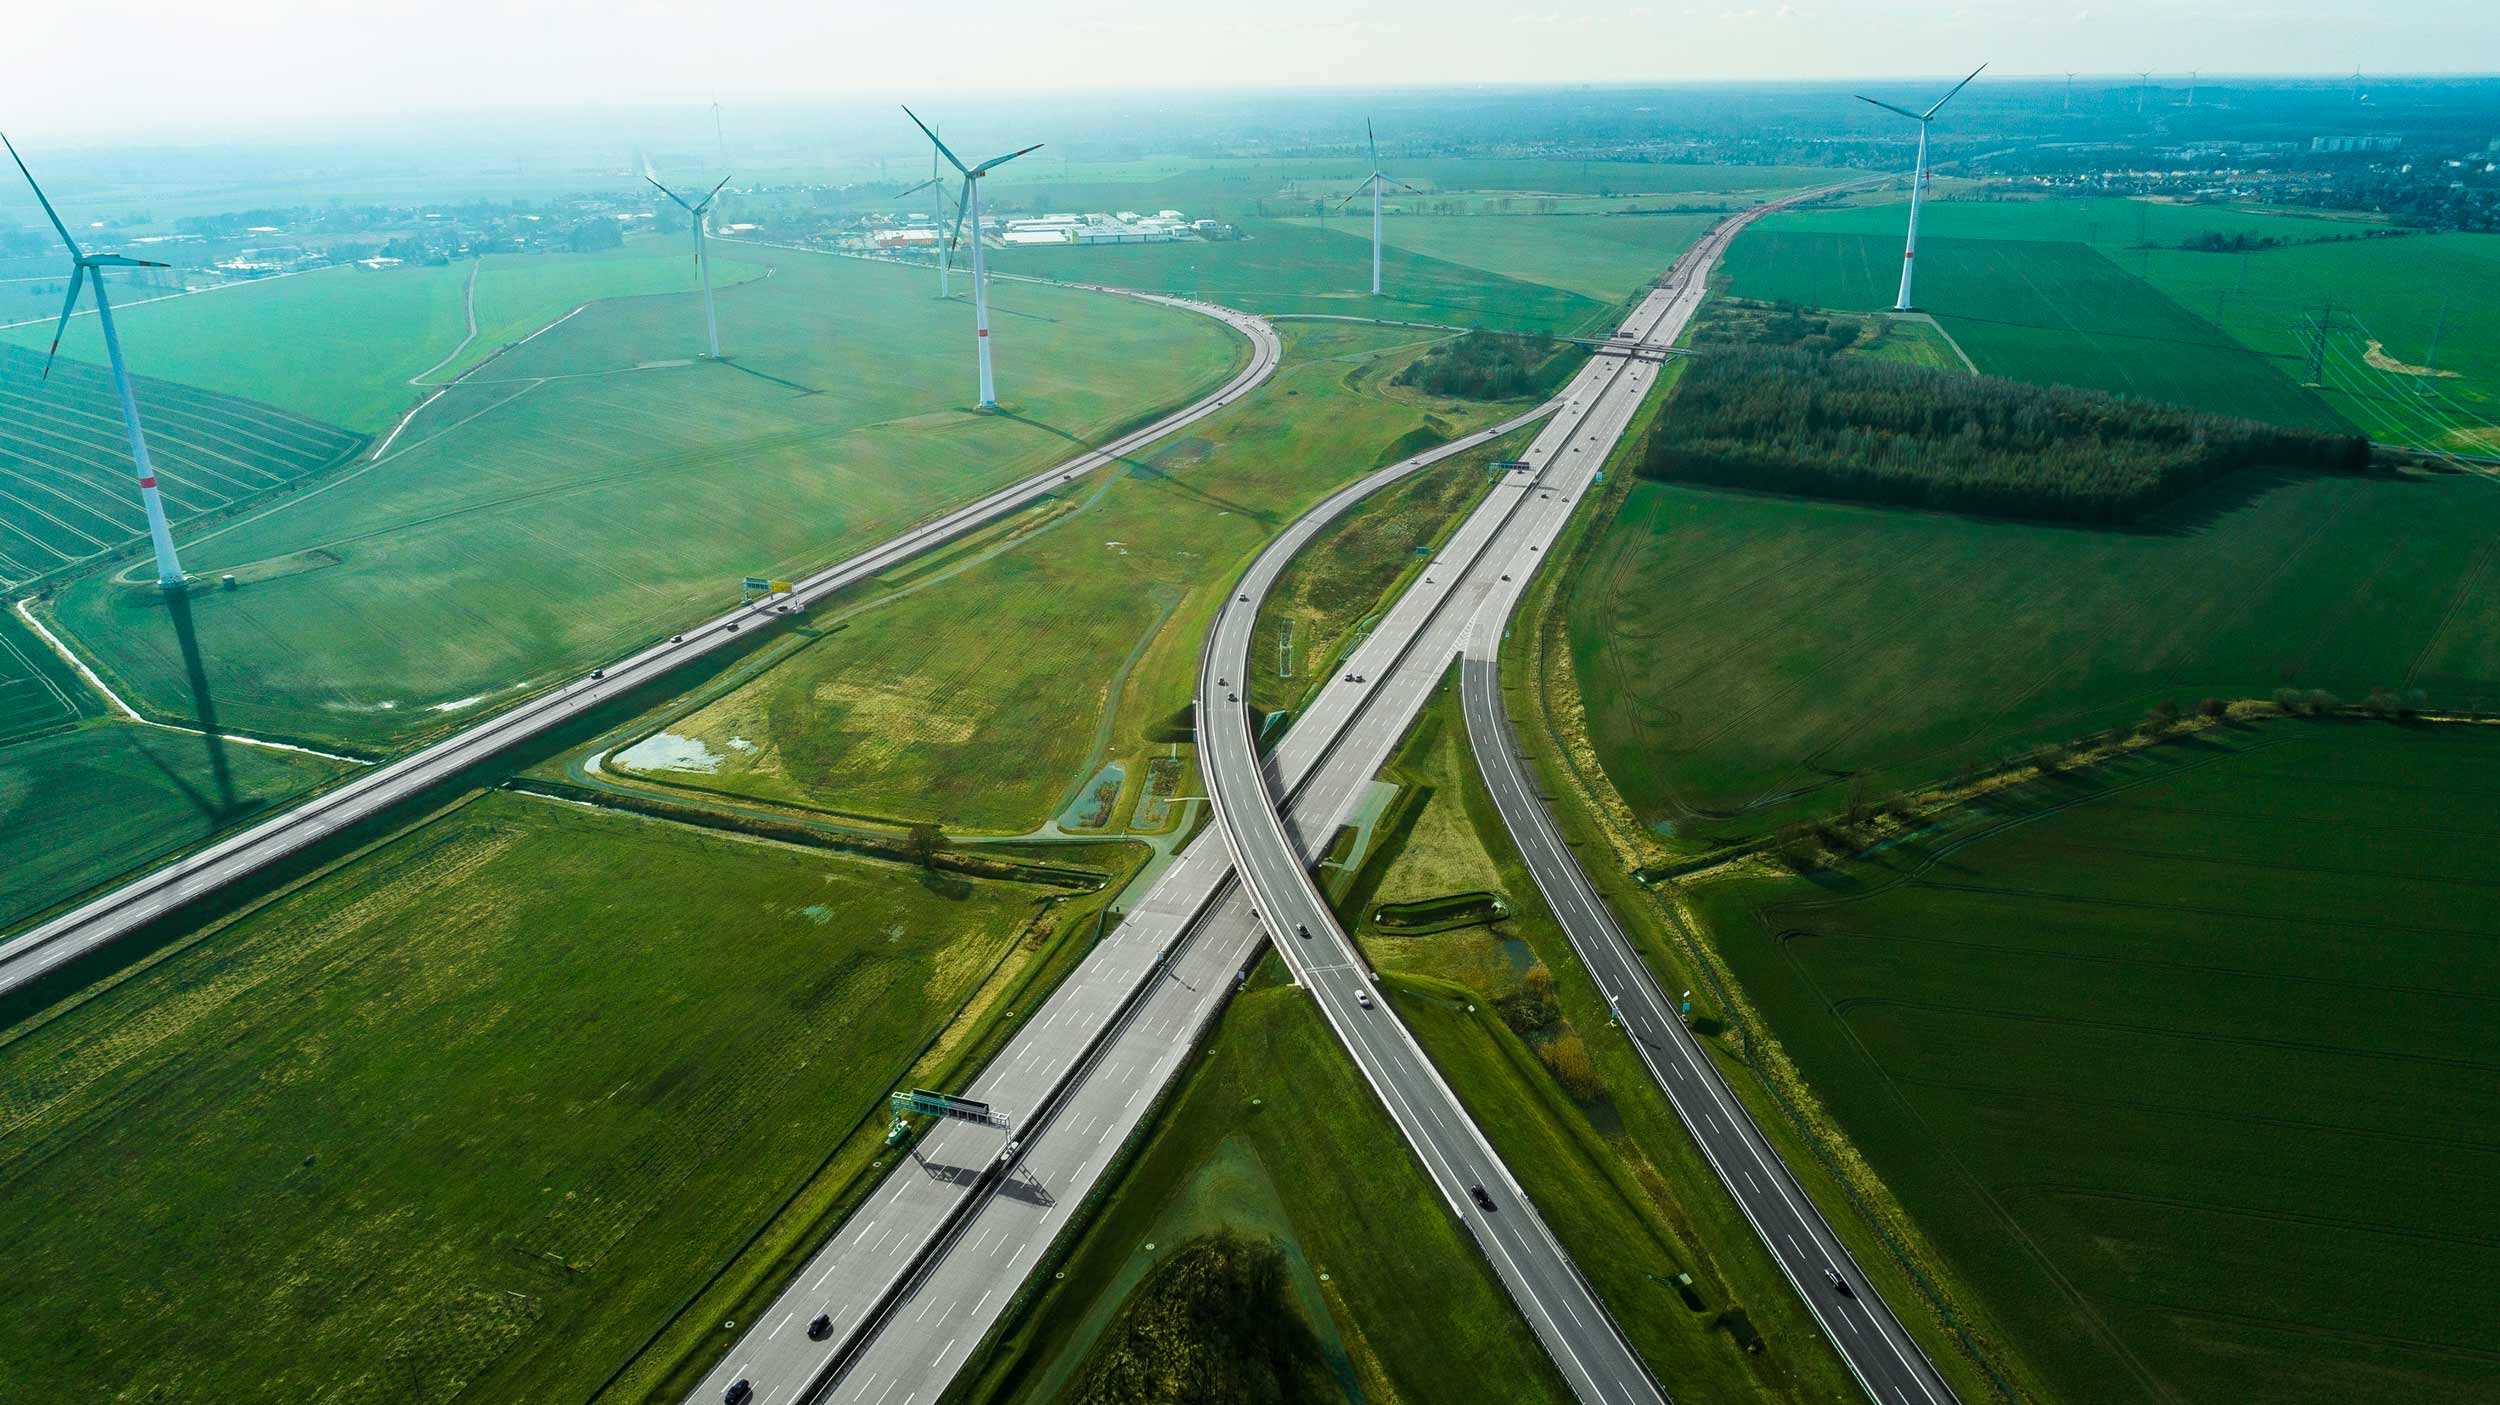 Image of road curving through fields containing wind turbines